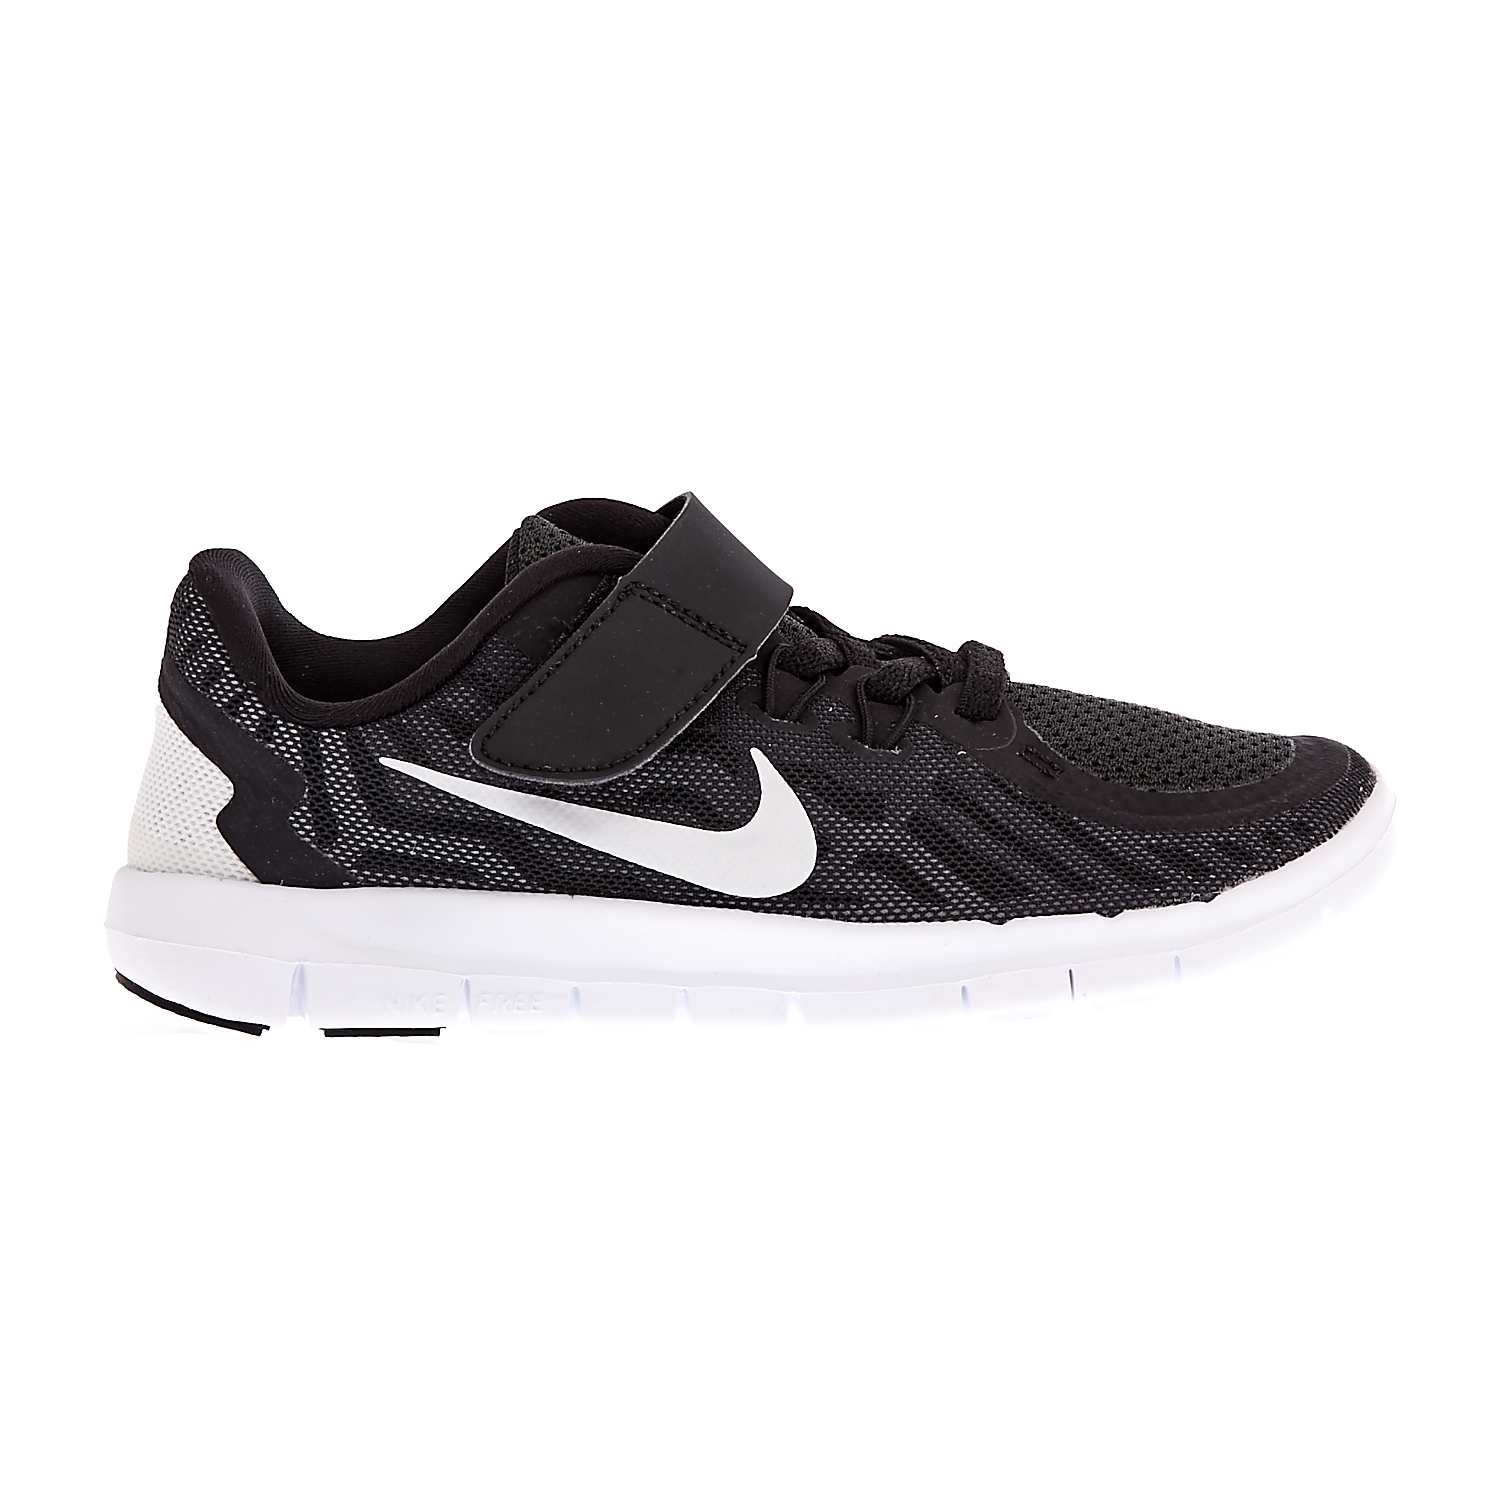 017dcc6dc6d NIKE - Παιδικά αθλητικά παπούτσια NIKE FREE 5.0 μαύρα